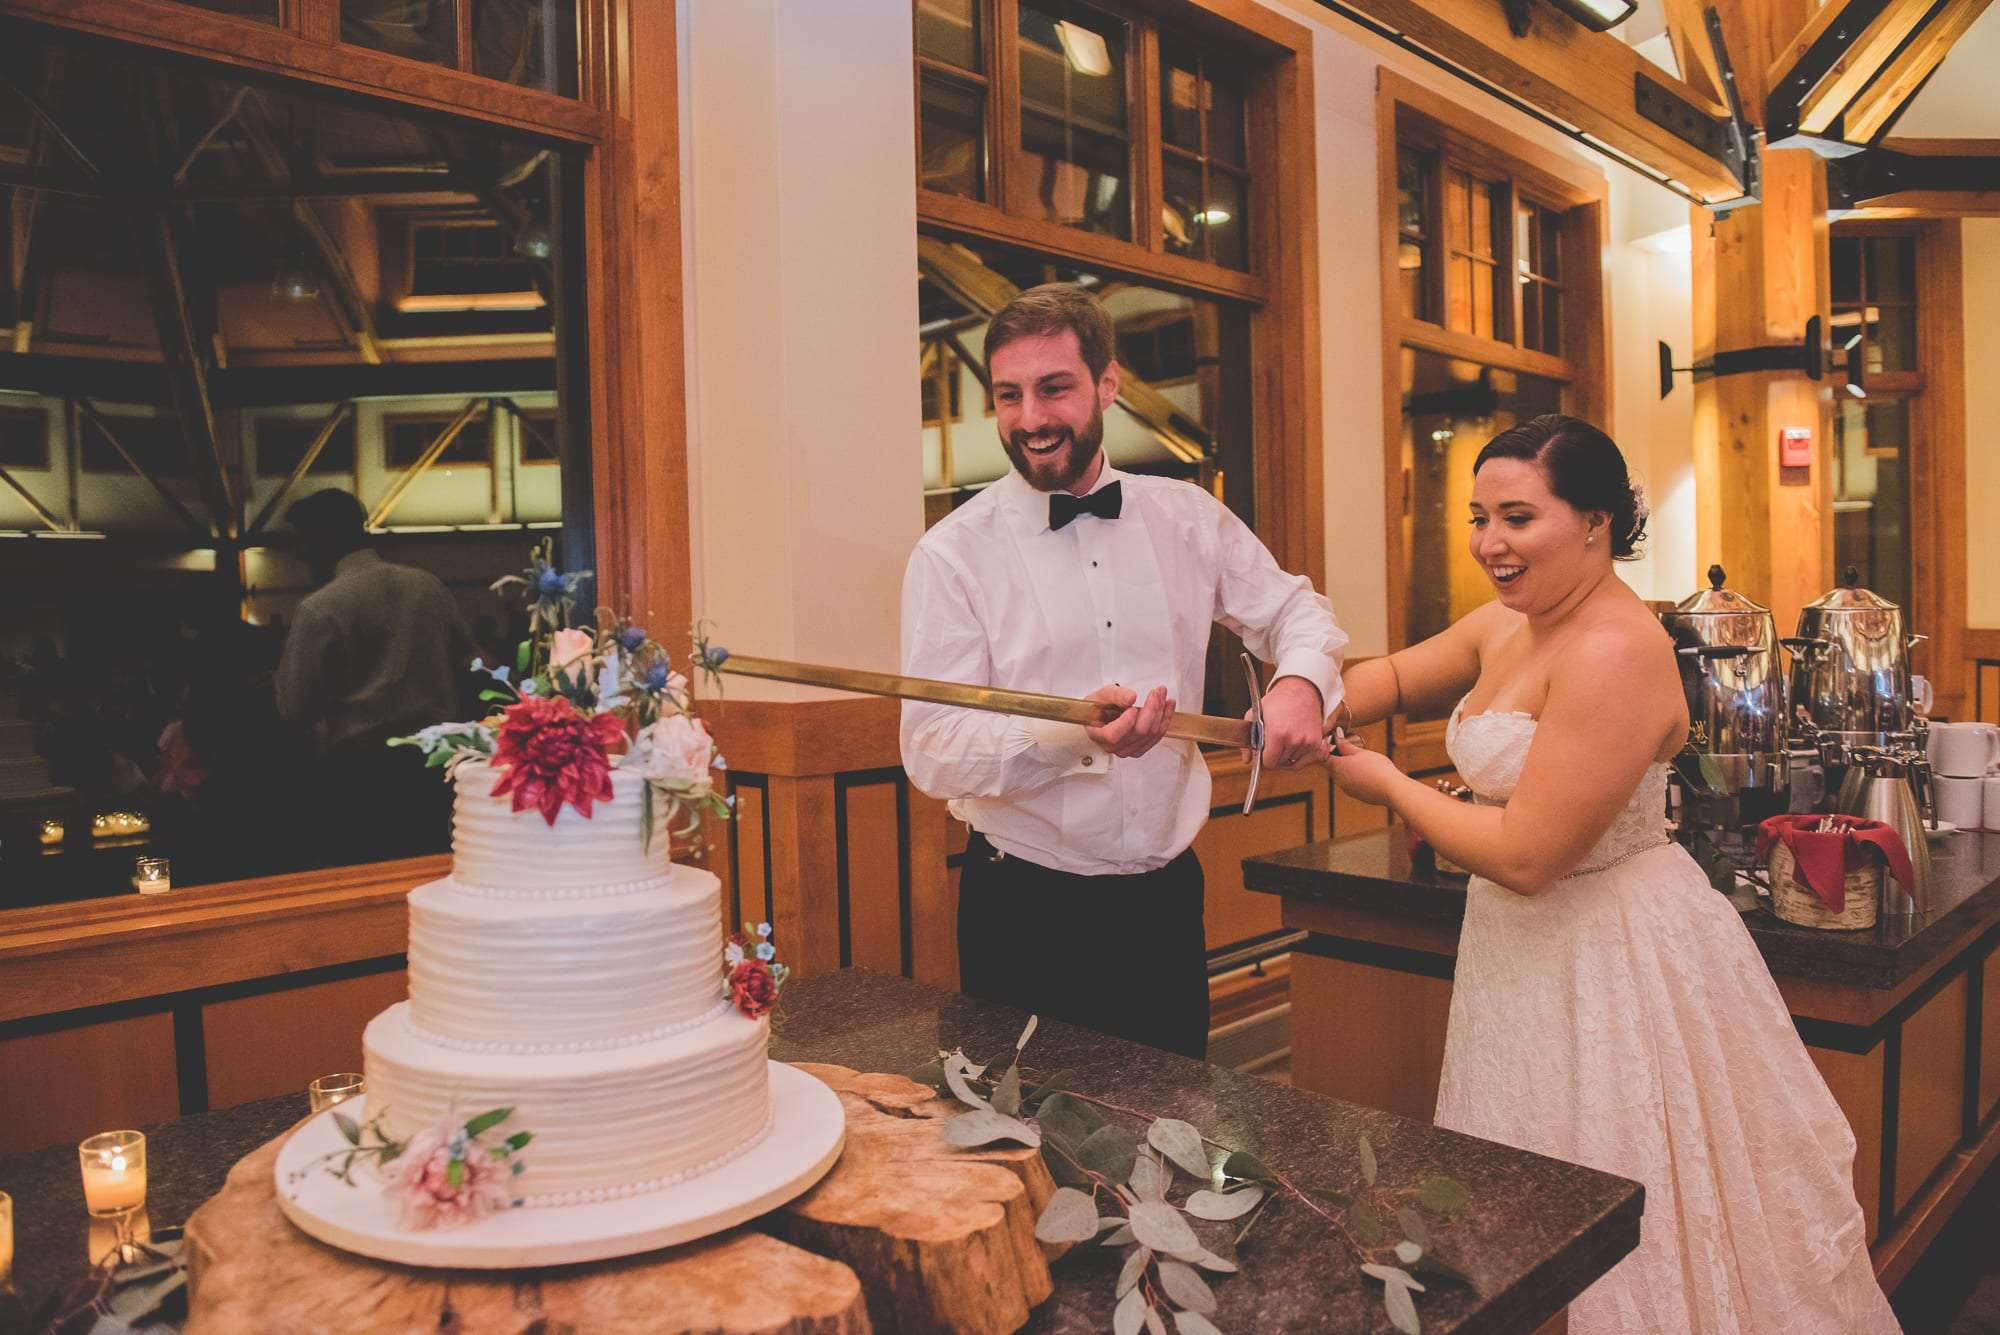 best wedding cake cutting photos